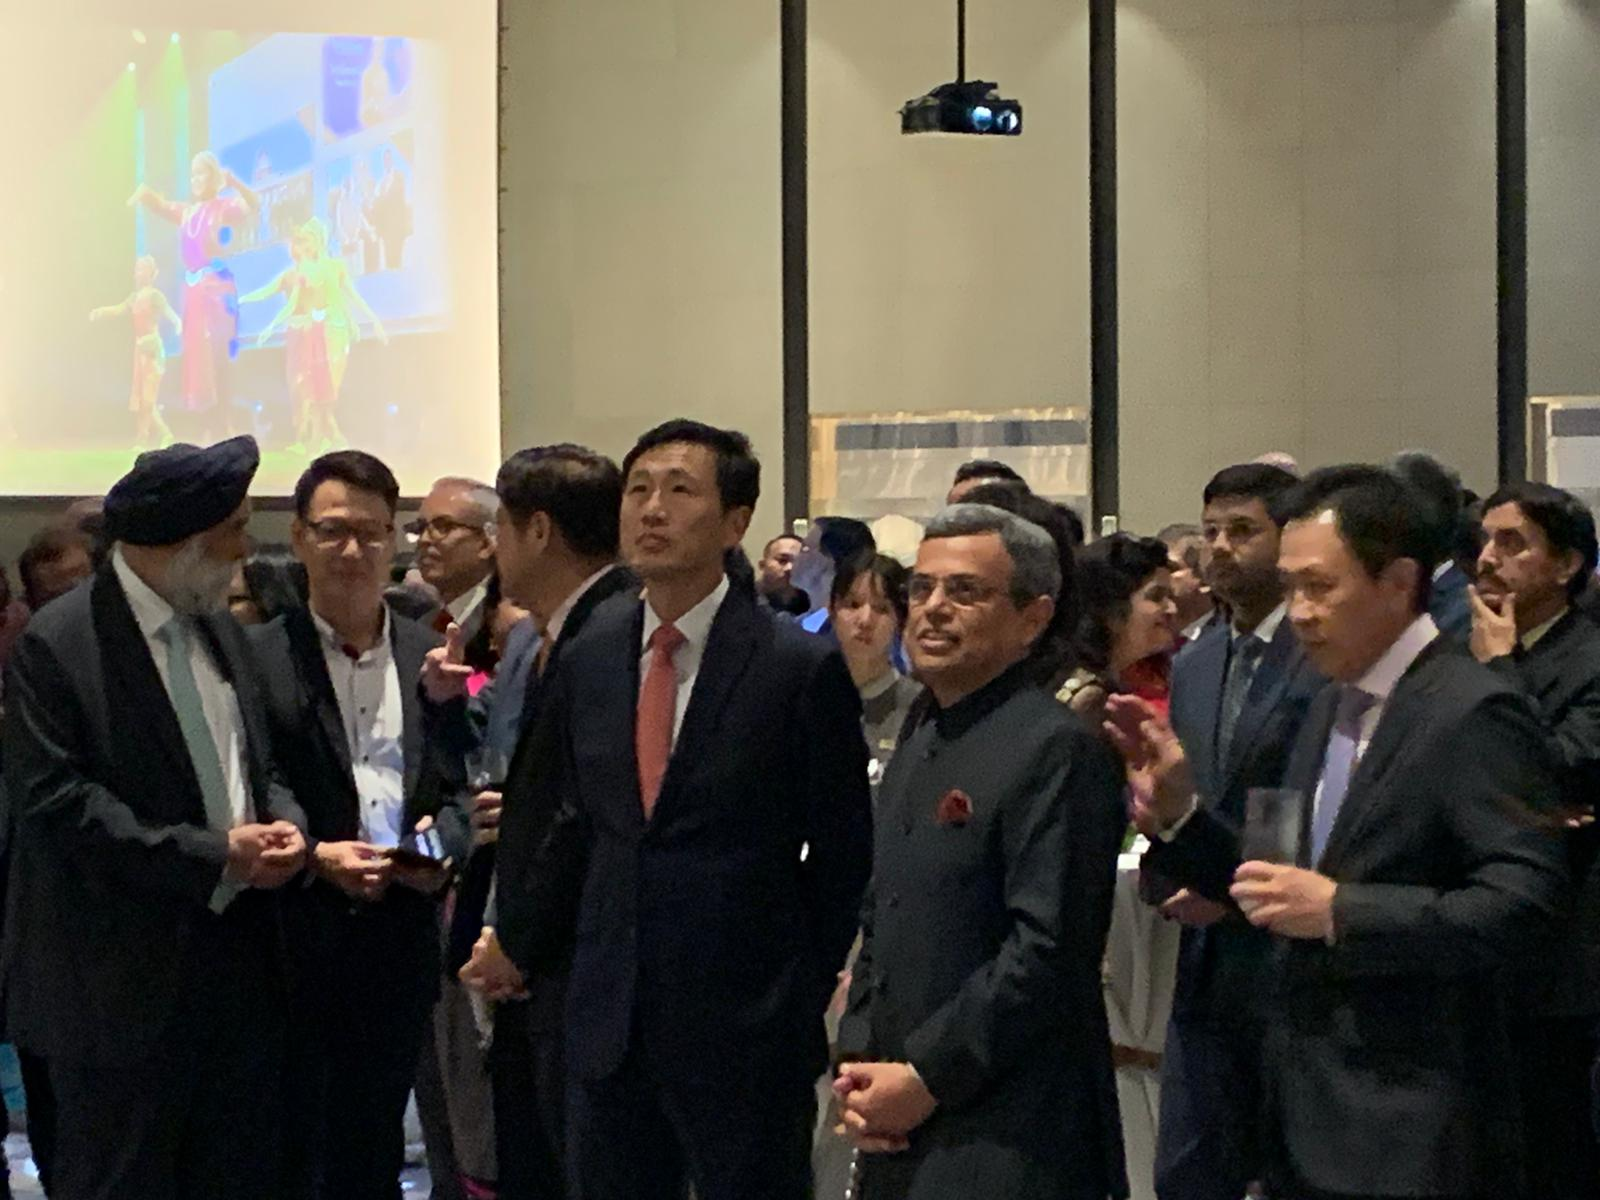 A 3-minute video on India-Singapore relations in the year 2019 was played, following which Jawed Ashraf delivered his remarks. Photo: Connected to India